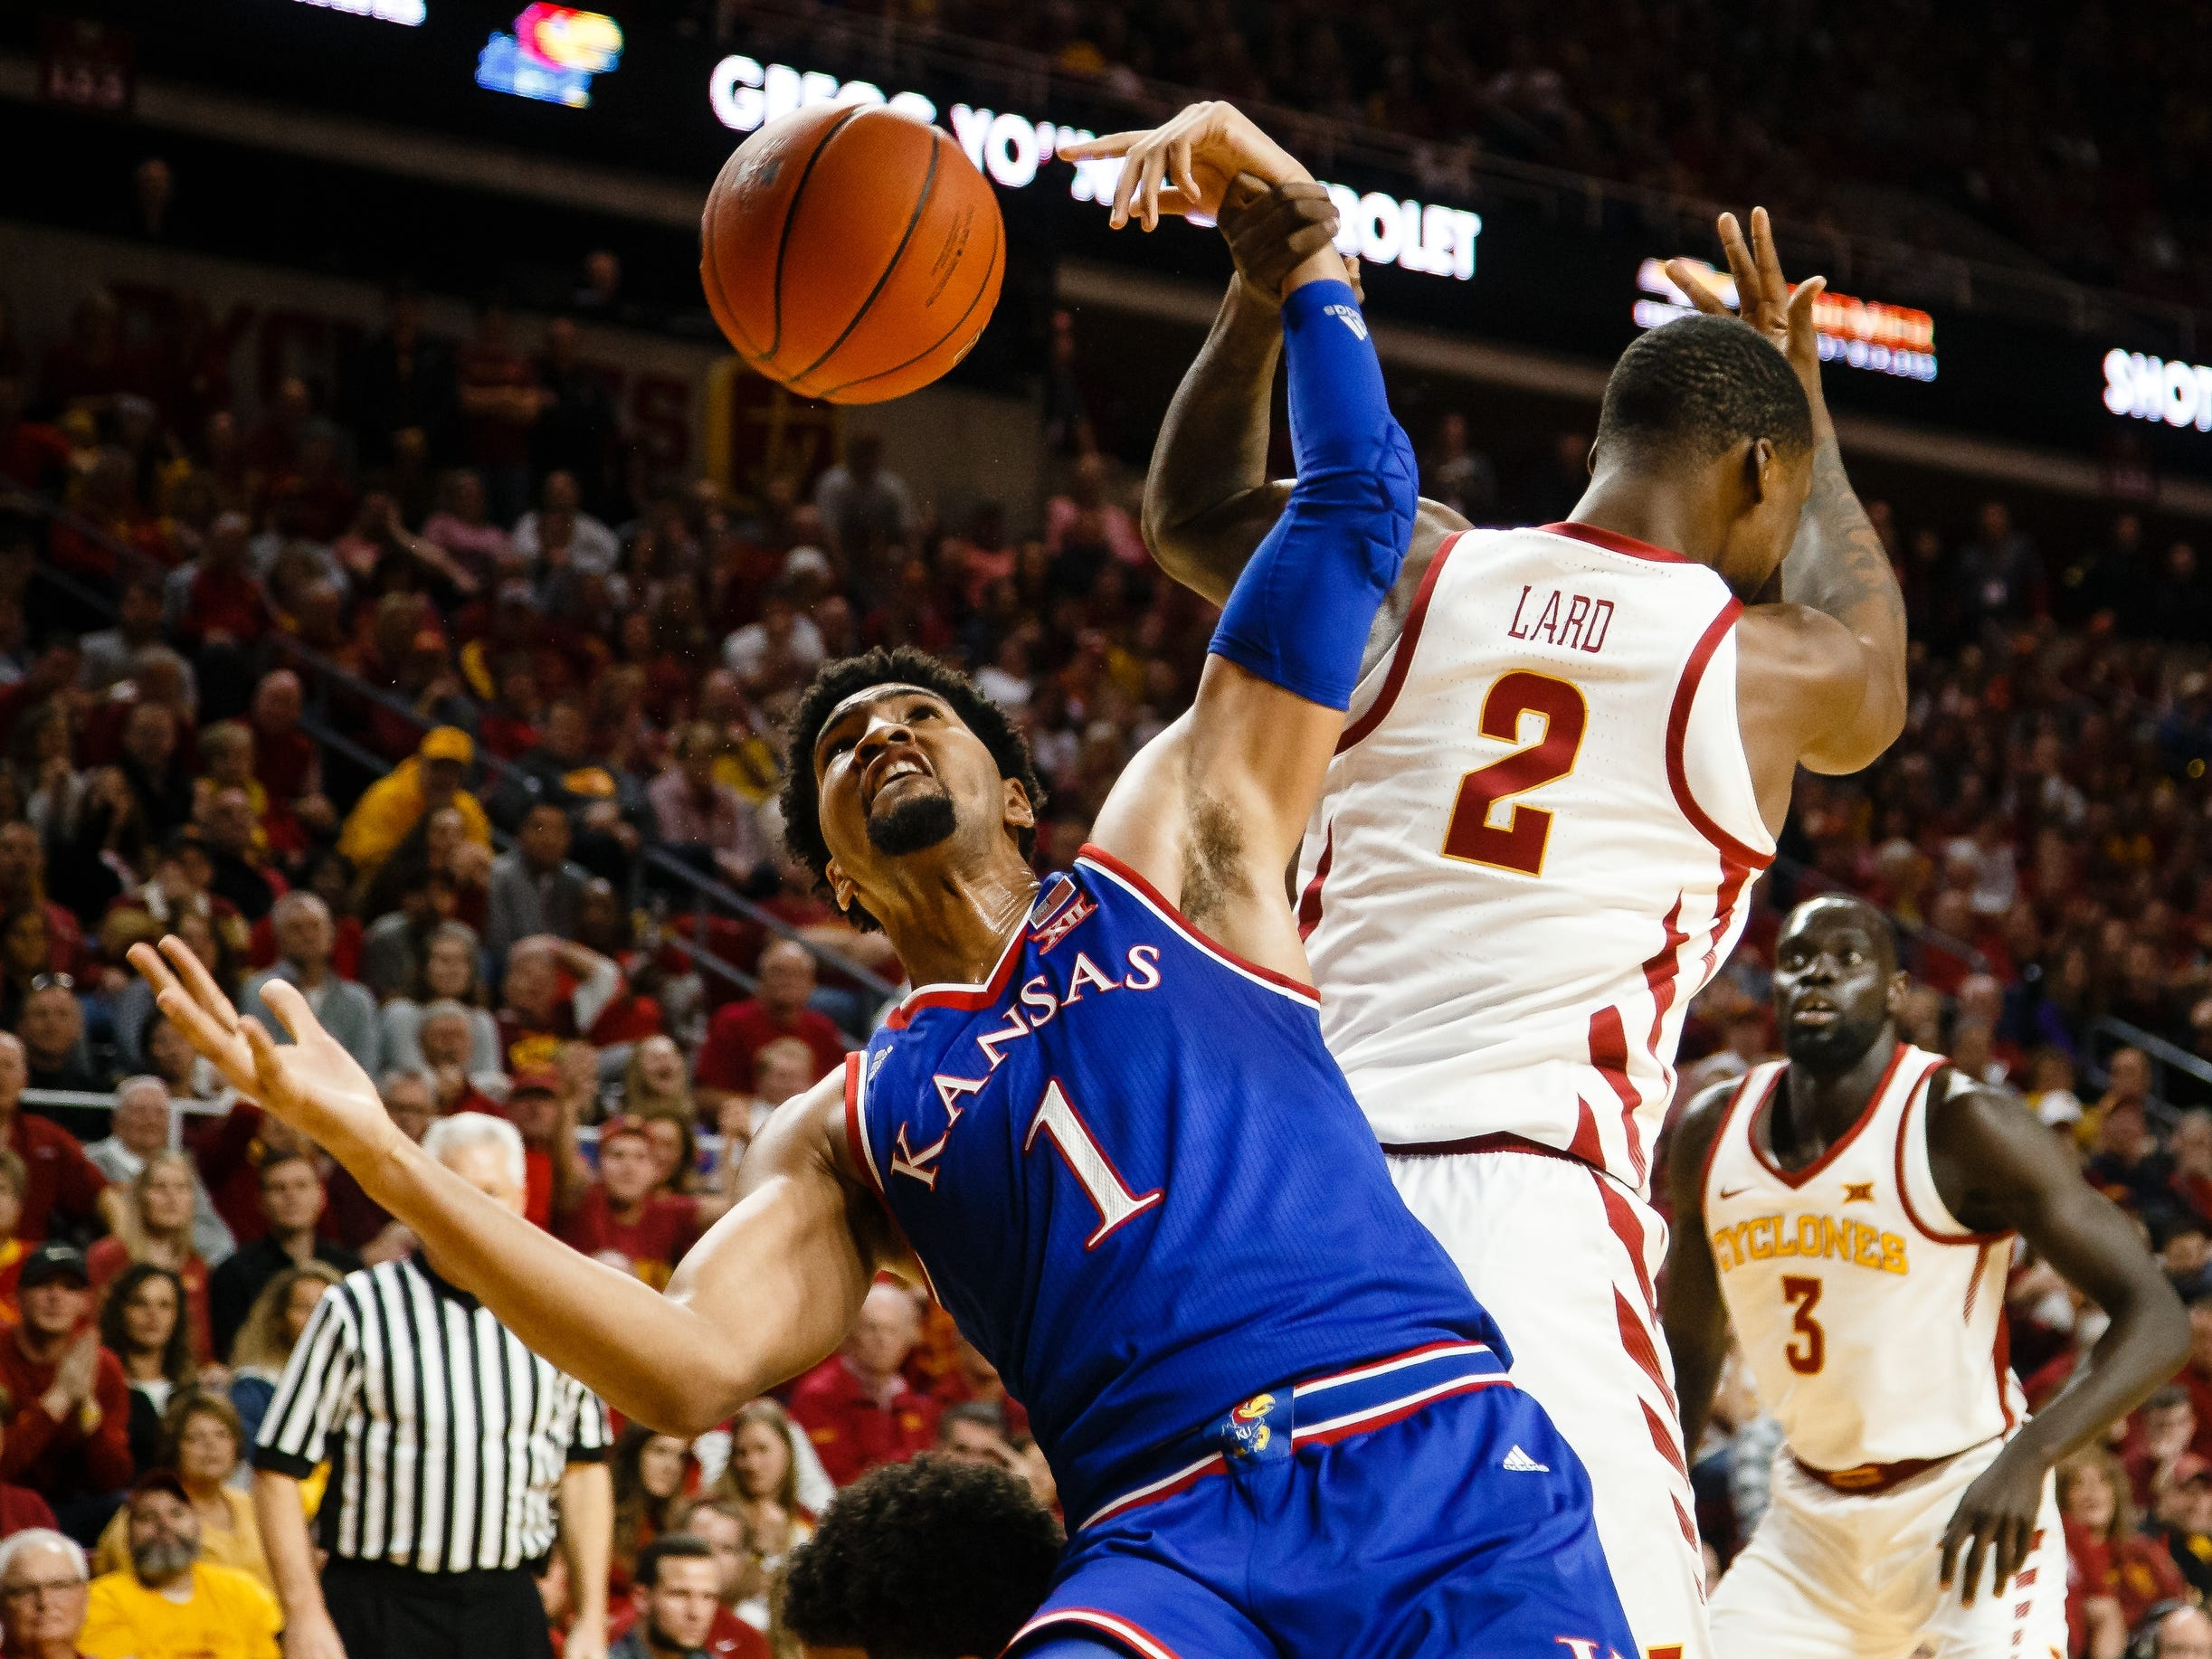 Kansas' Dedric Lawson (1) goes up for a rebound against Iowa State's Cameron Lard (2) and Iowa State's Nick Weiler-Babb (1) during the first half of their basketball game on Saturday, Jan. 5, 2019, in Ames. Iowa State would go on to win 77-60.